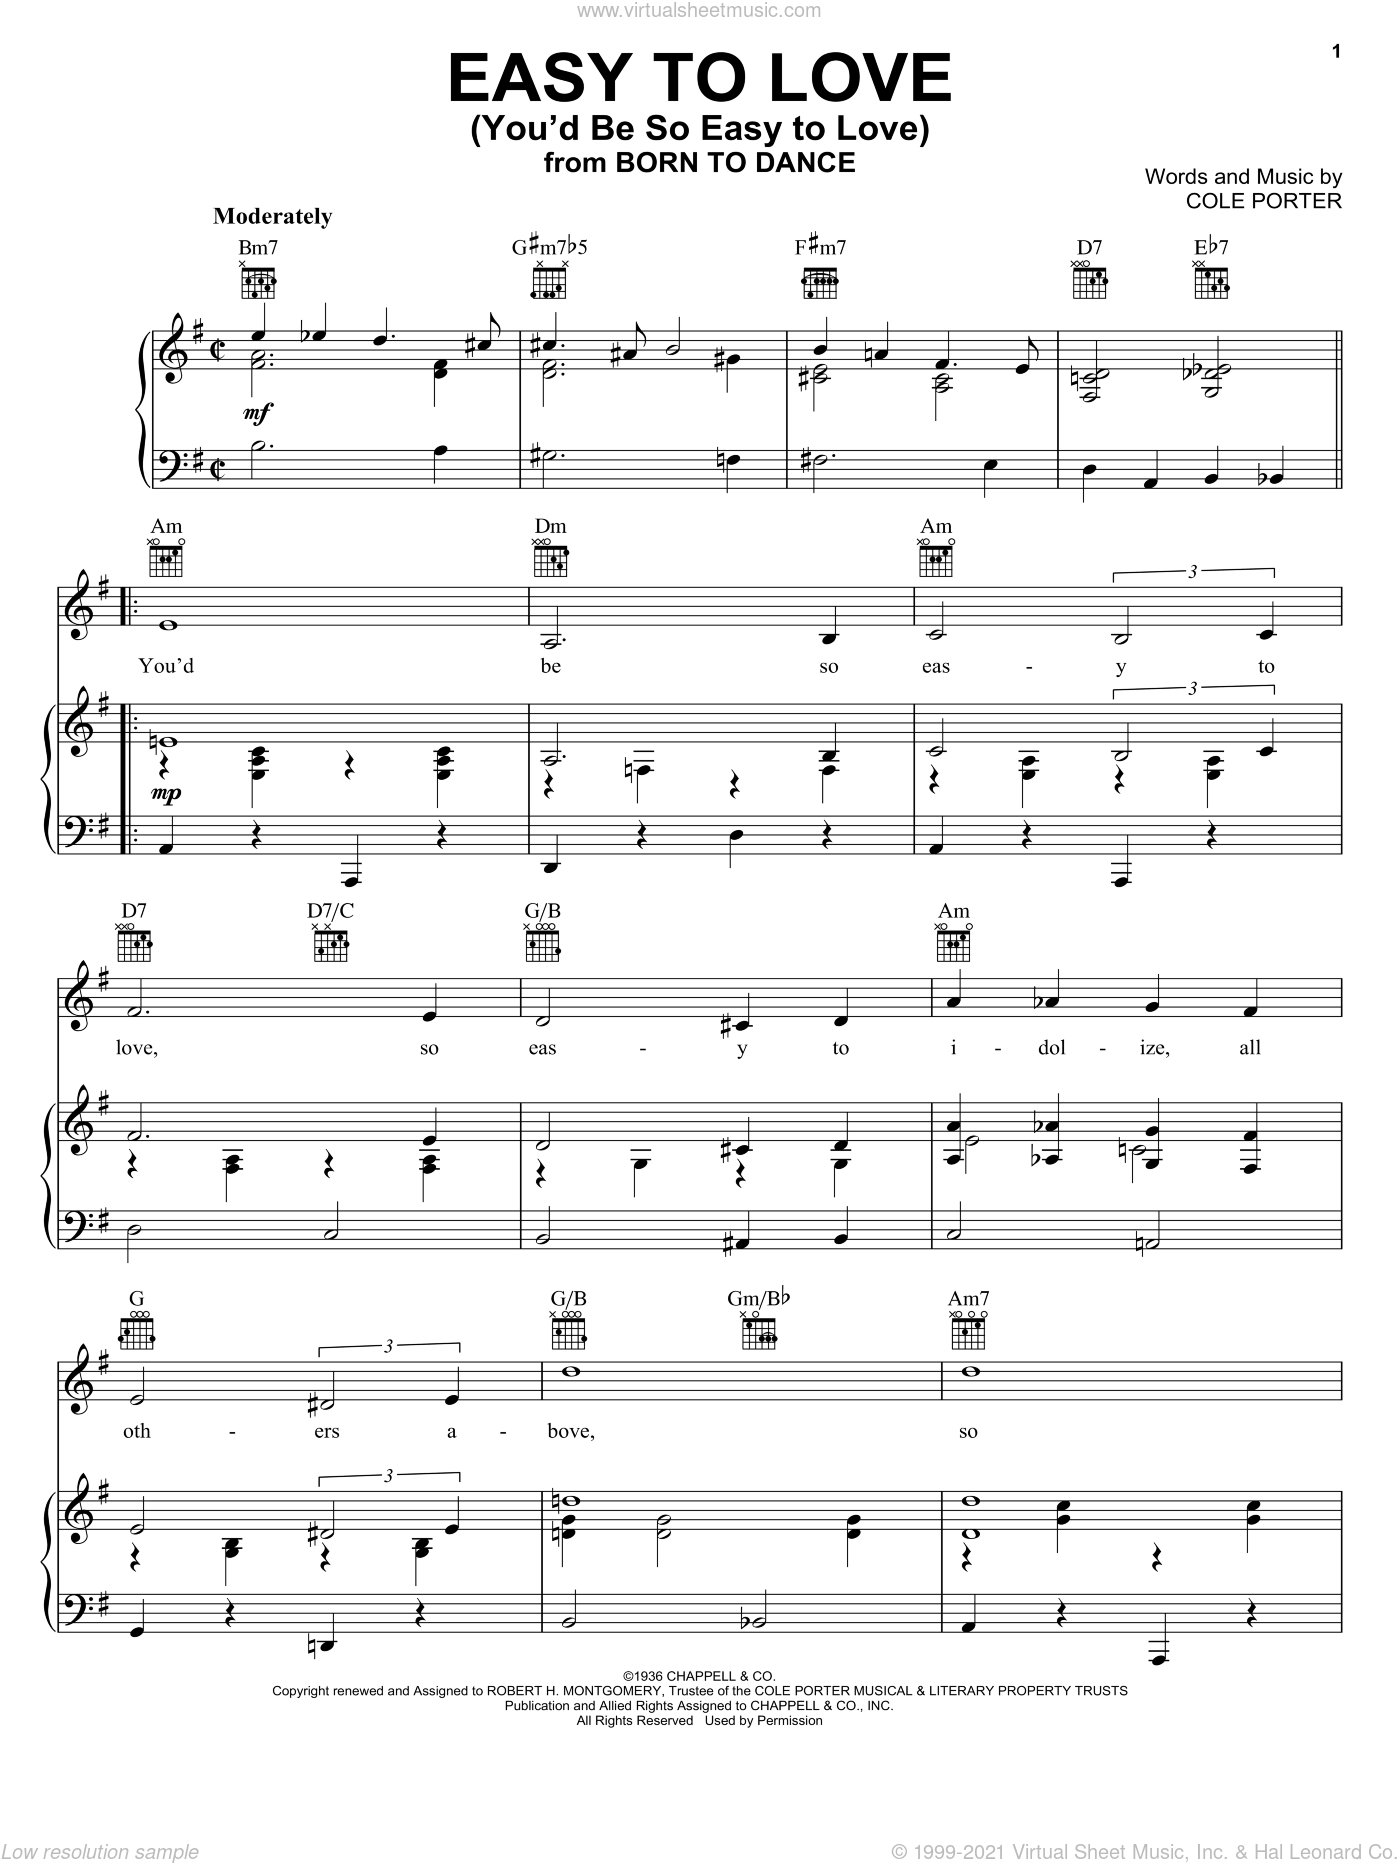 Easy To Love (You'd Be So Easy To Love) sheet music for voice, piano or guitar by Frank Sinatra